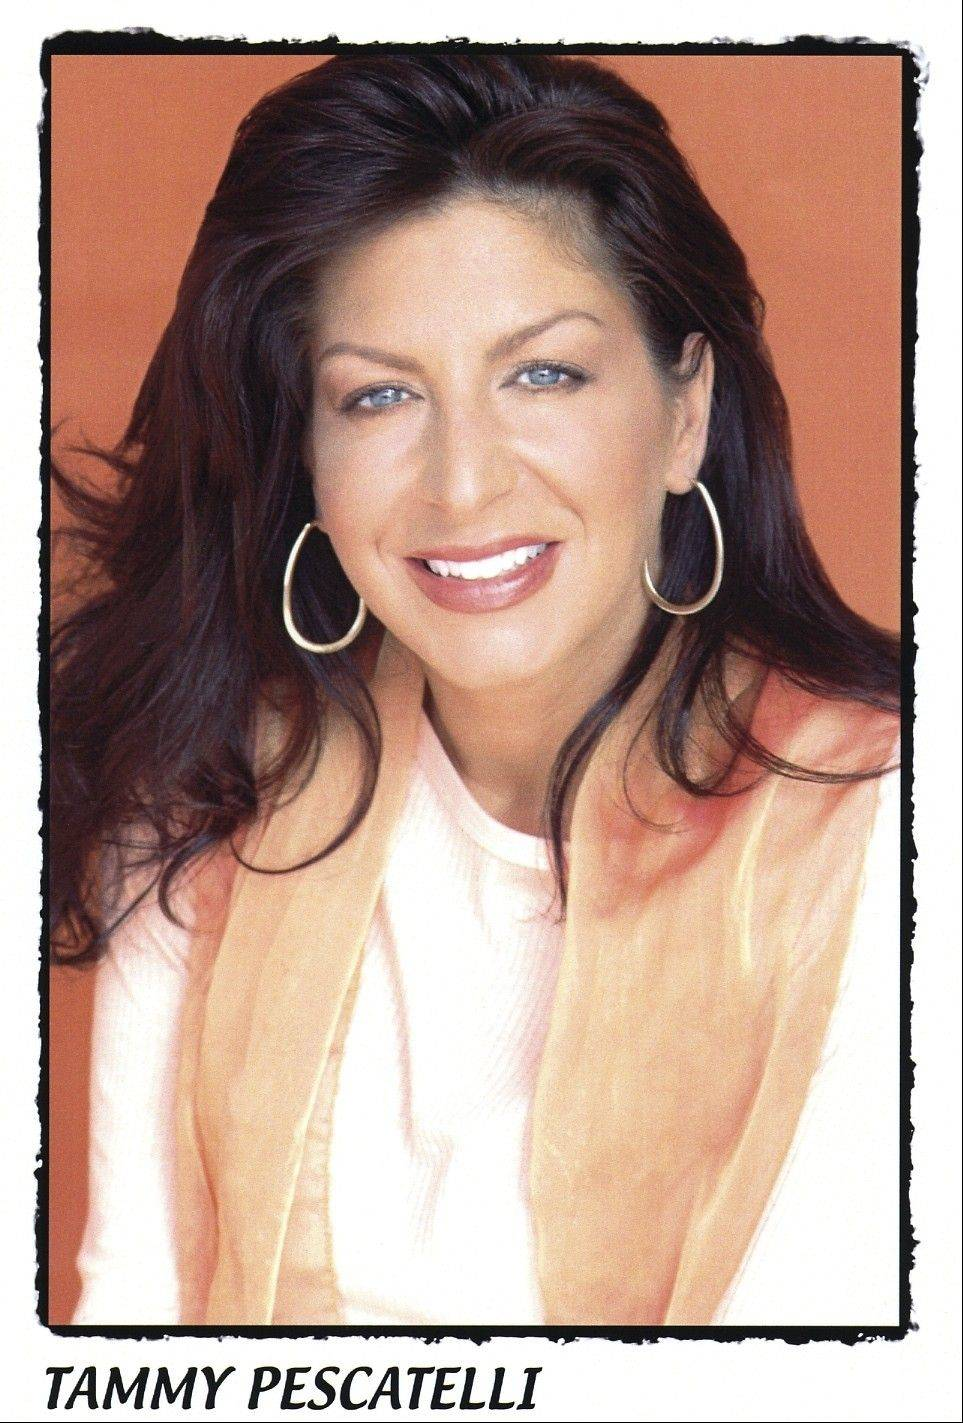 Tammy Pescatelli headlines The Improv Comedy Showcase in Schaumburg.